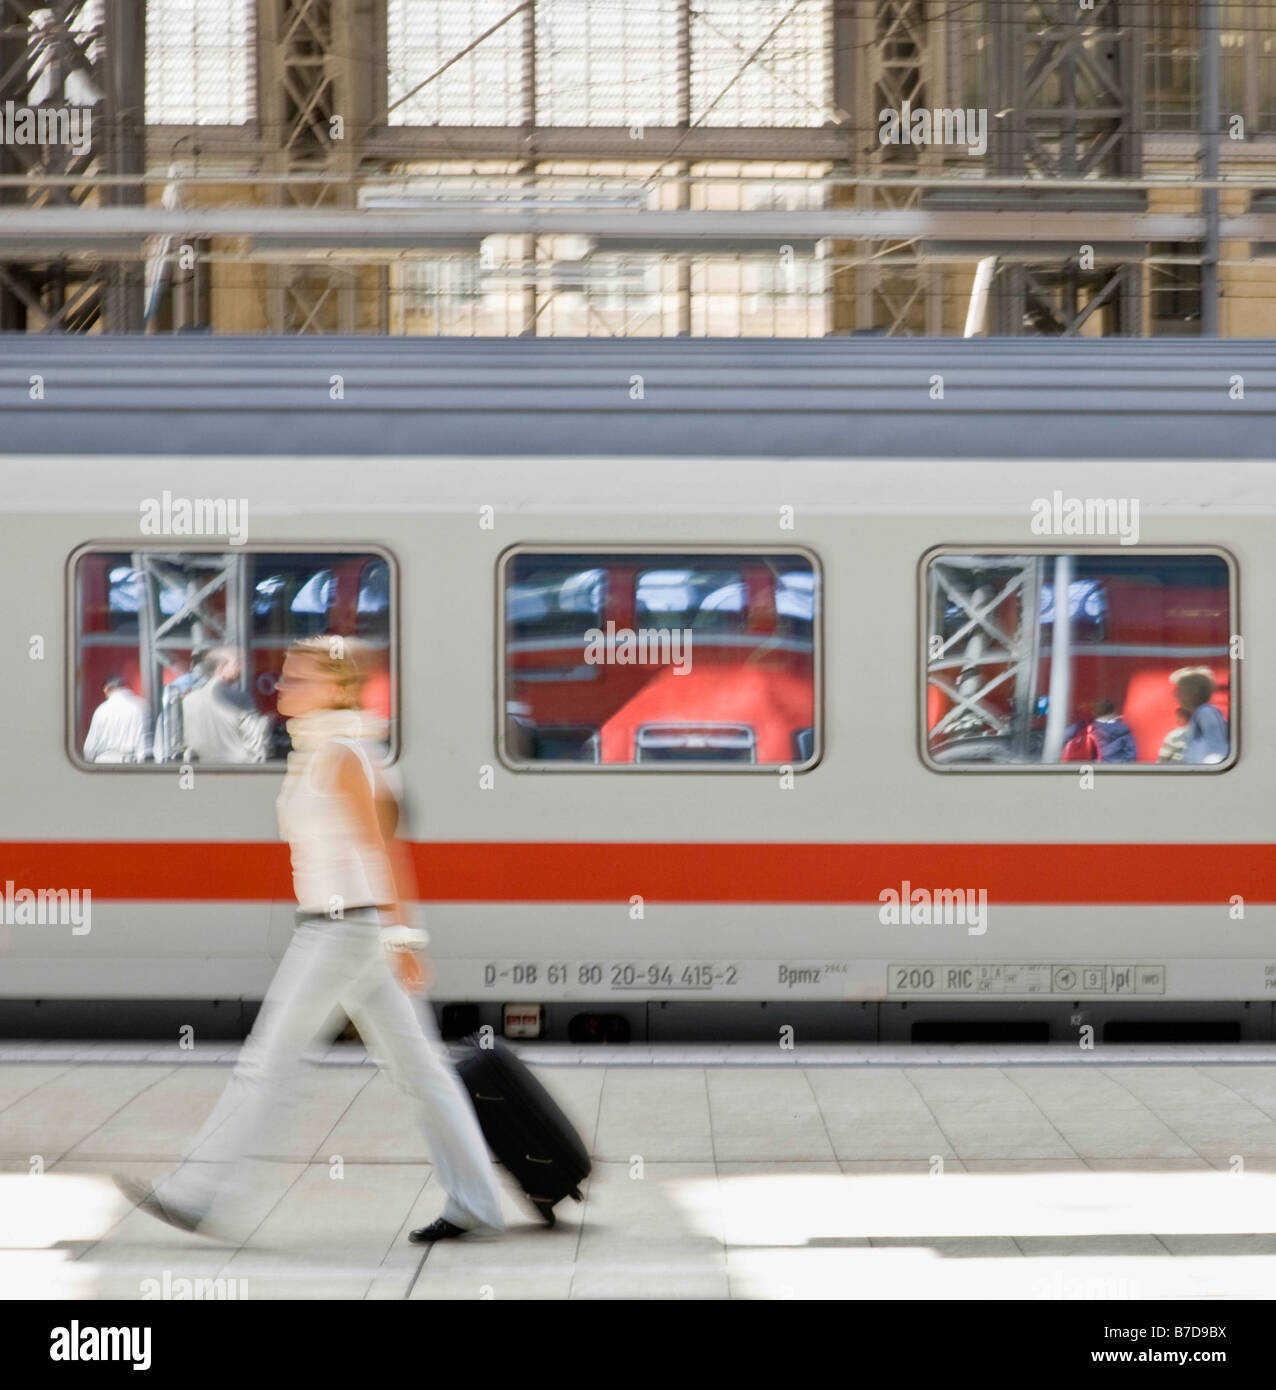 Blur of woman walking past train - Stock Image